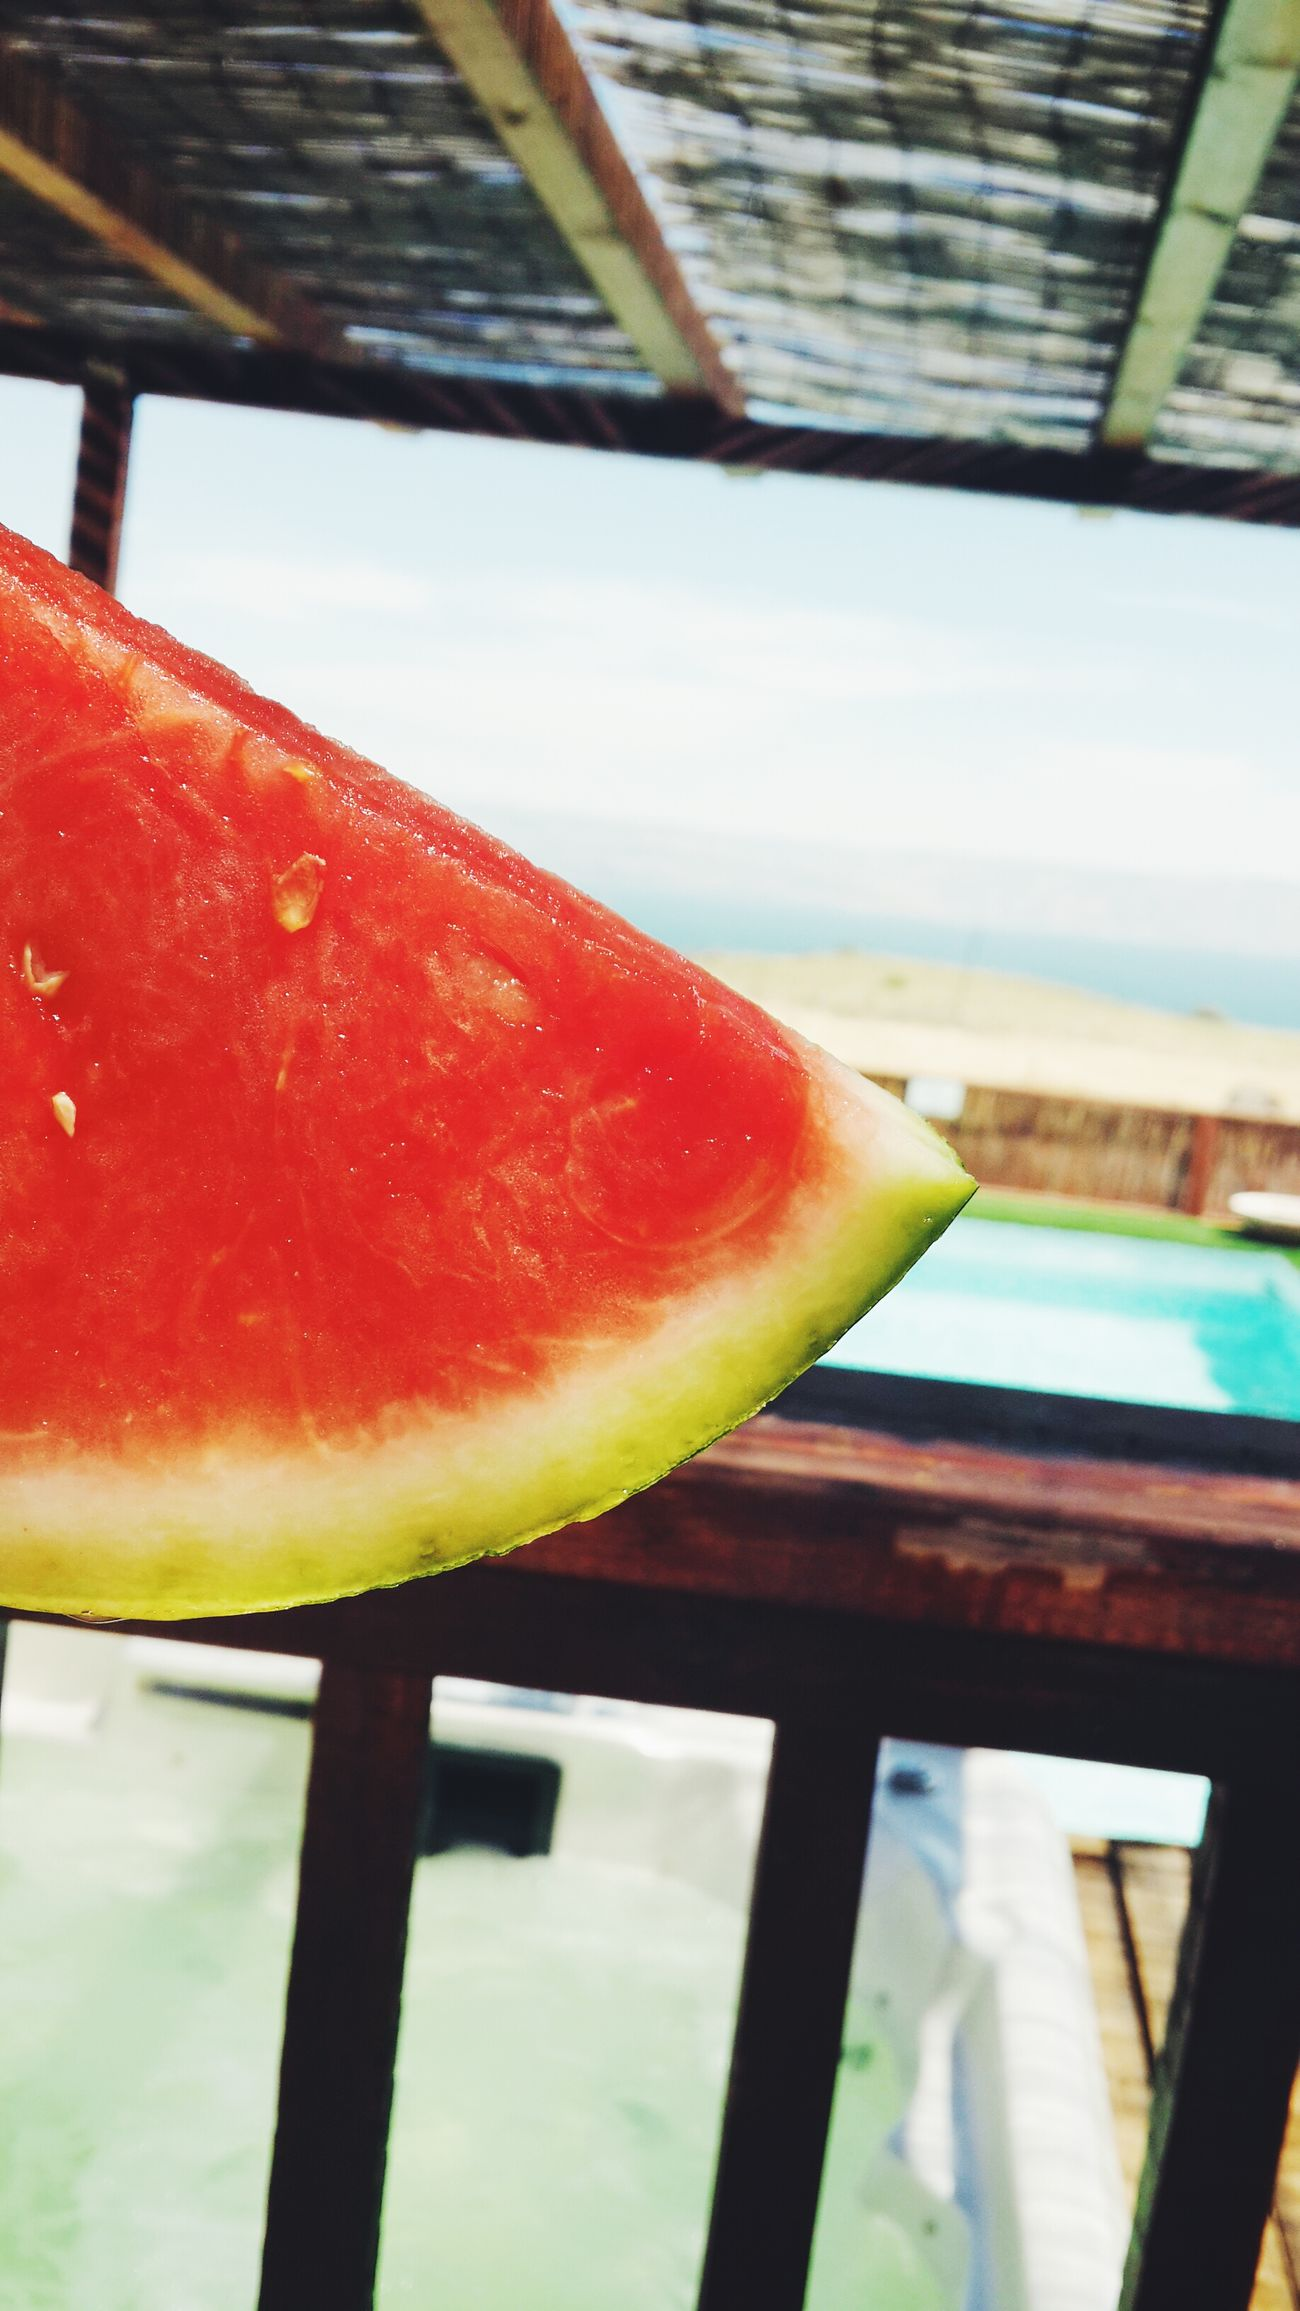 Eating Watermelon Loving The Season Sea And Sky Love